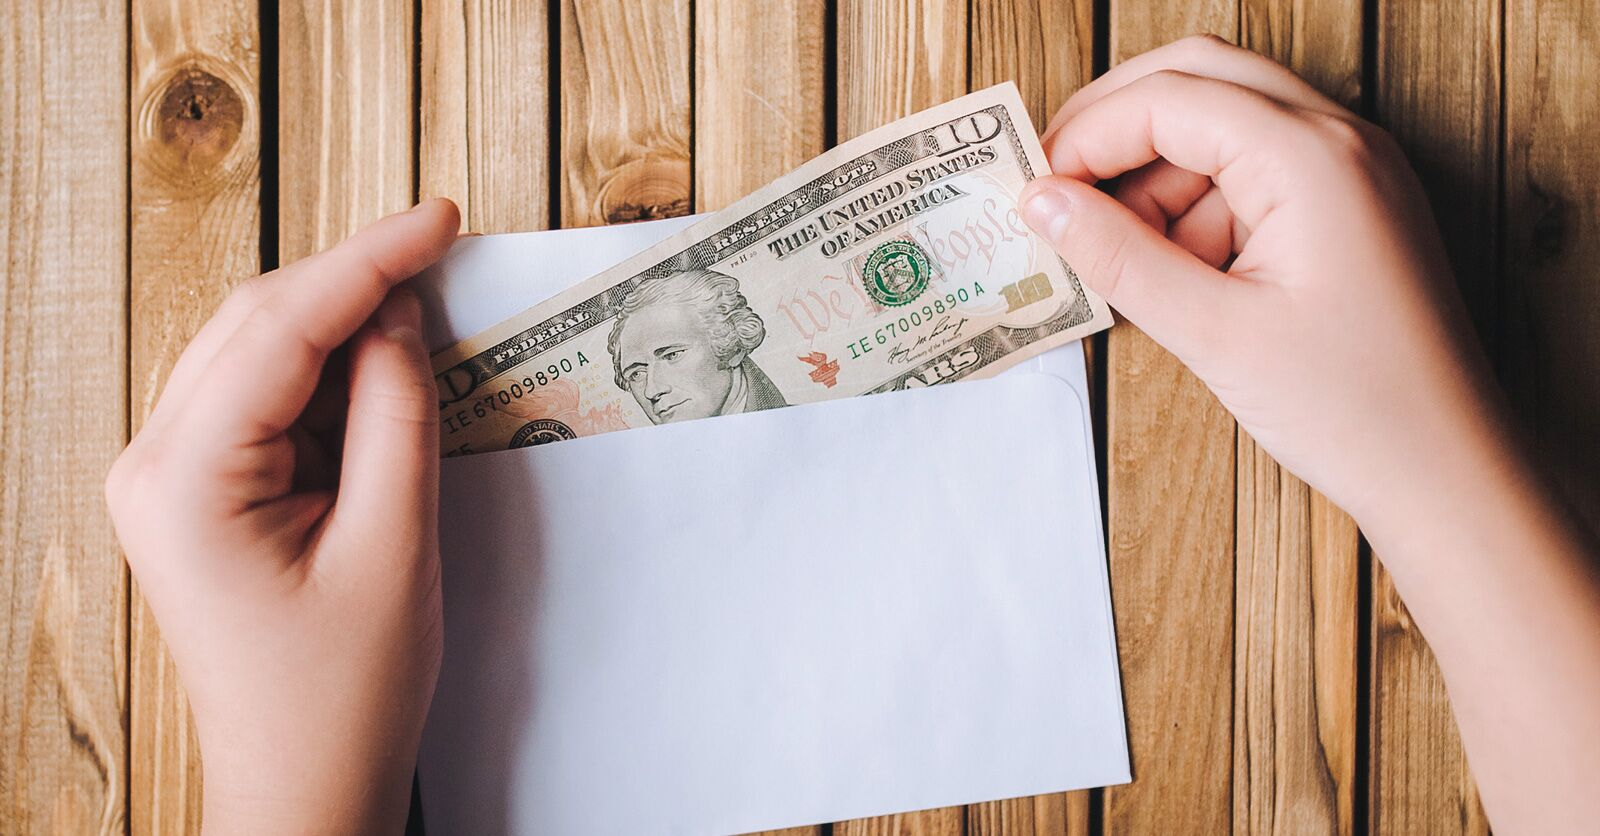 Wedding Vendor Tipping: How Much Should You Tip Your Vendors?